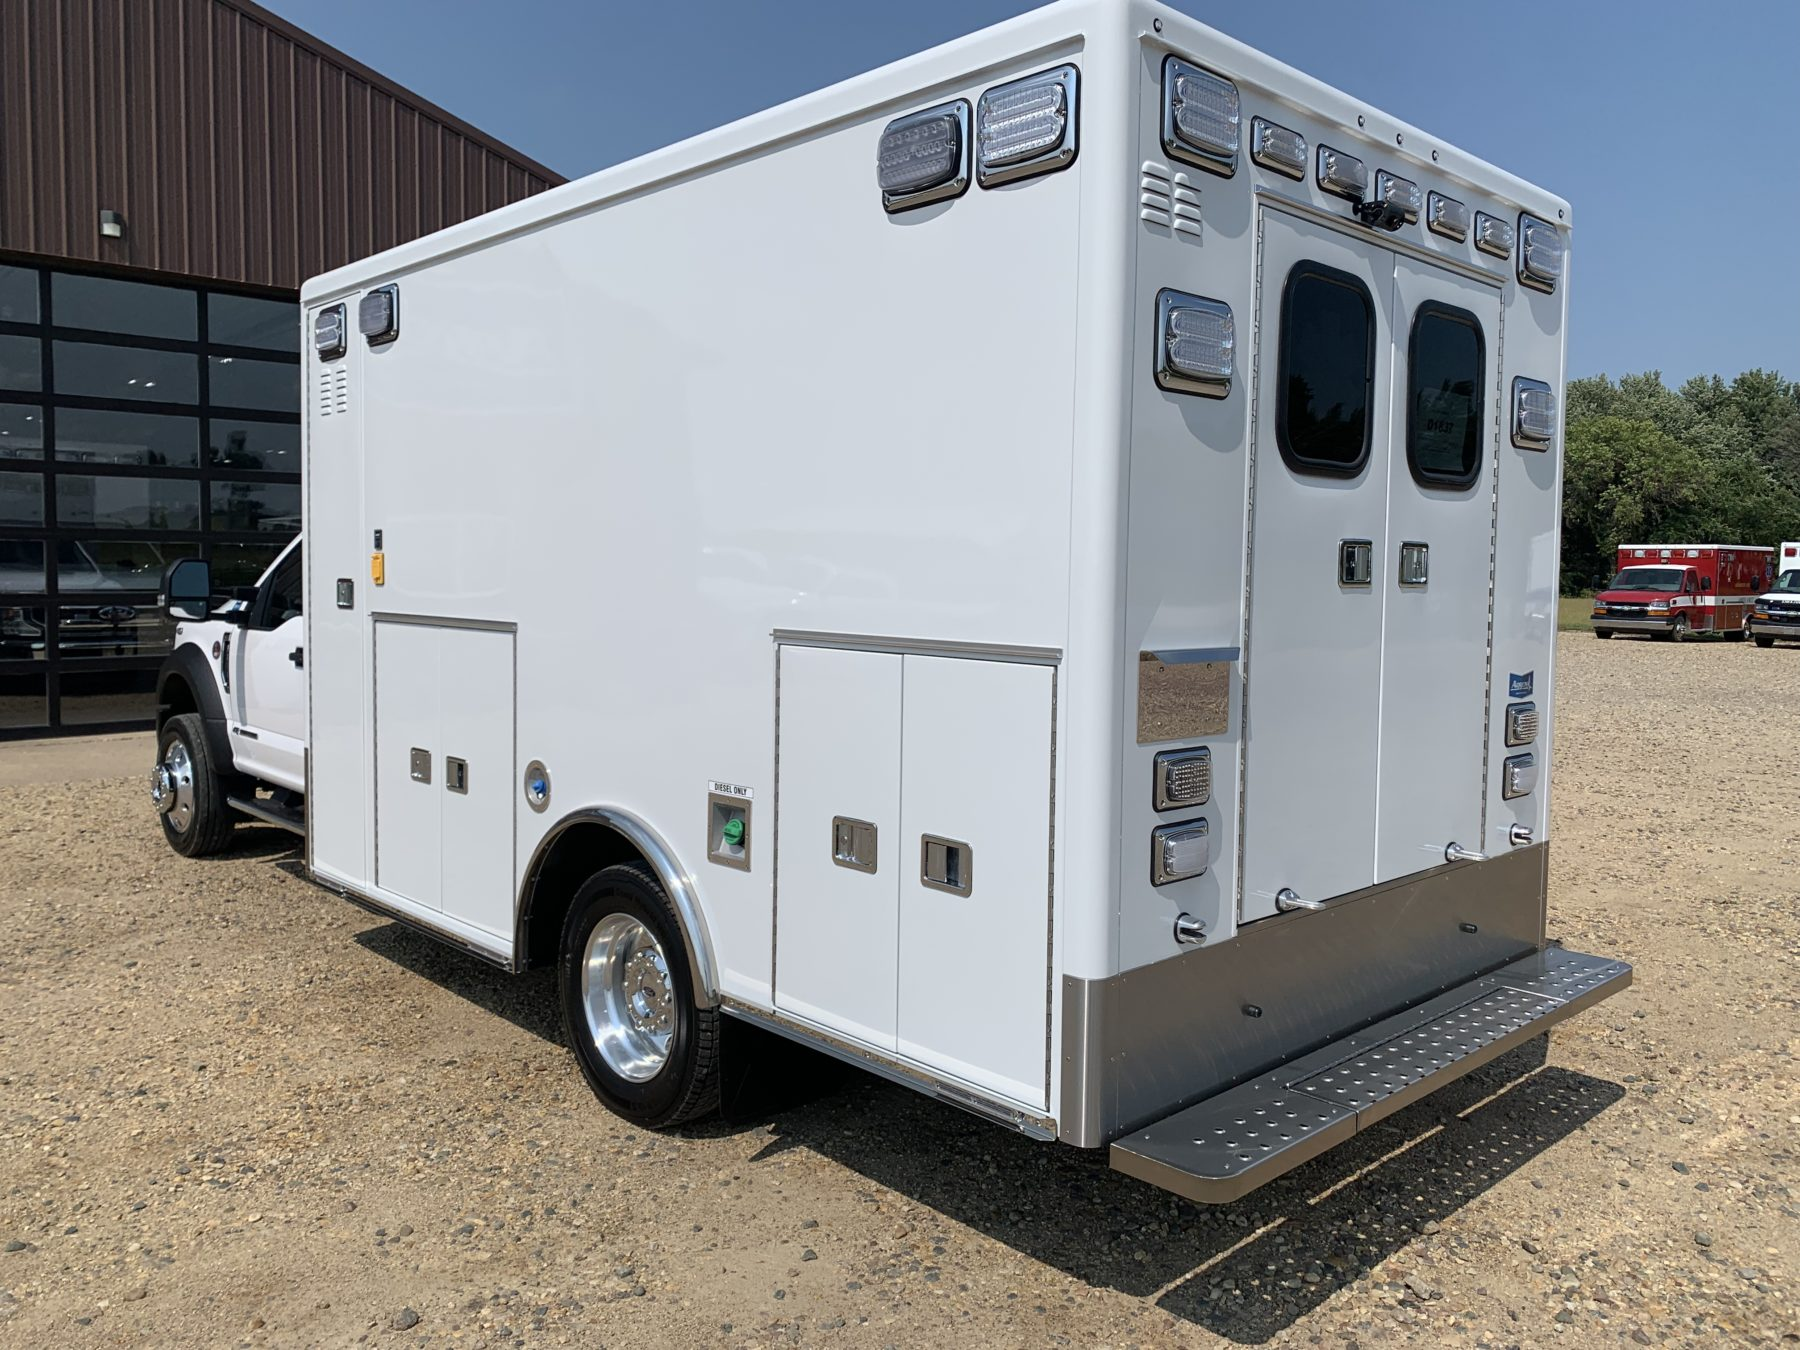 2021 Ford F550 4x4 Heavy Duty Ambulance For Sale – Picture 11